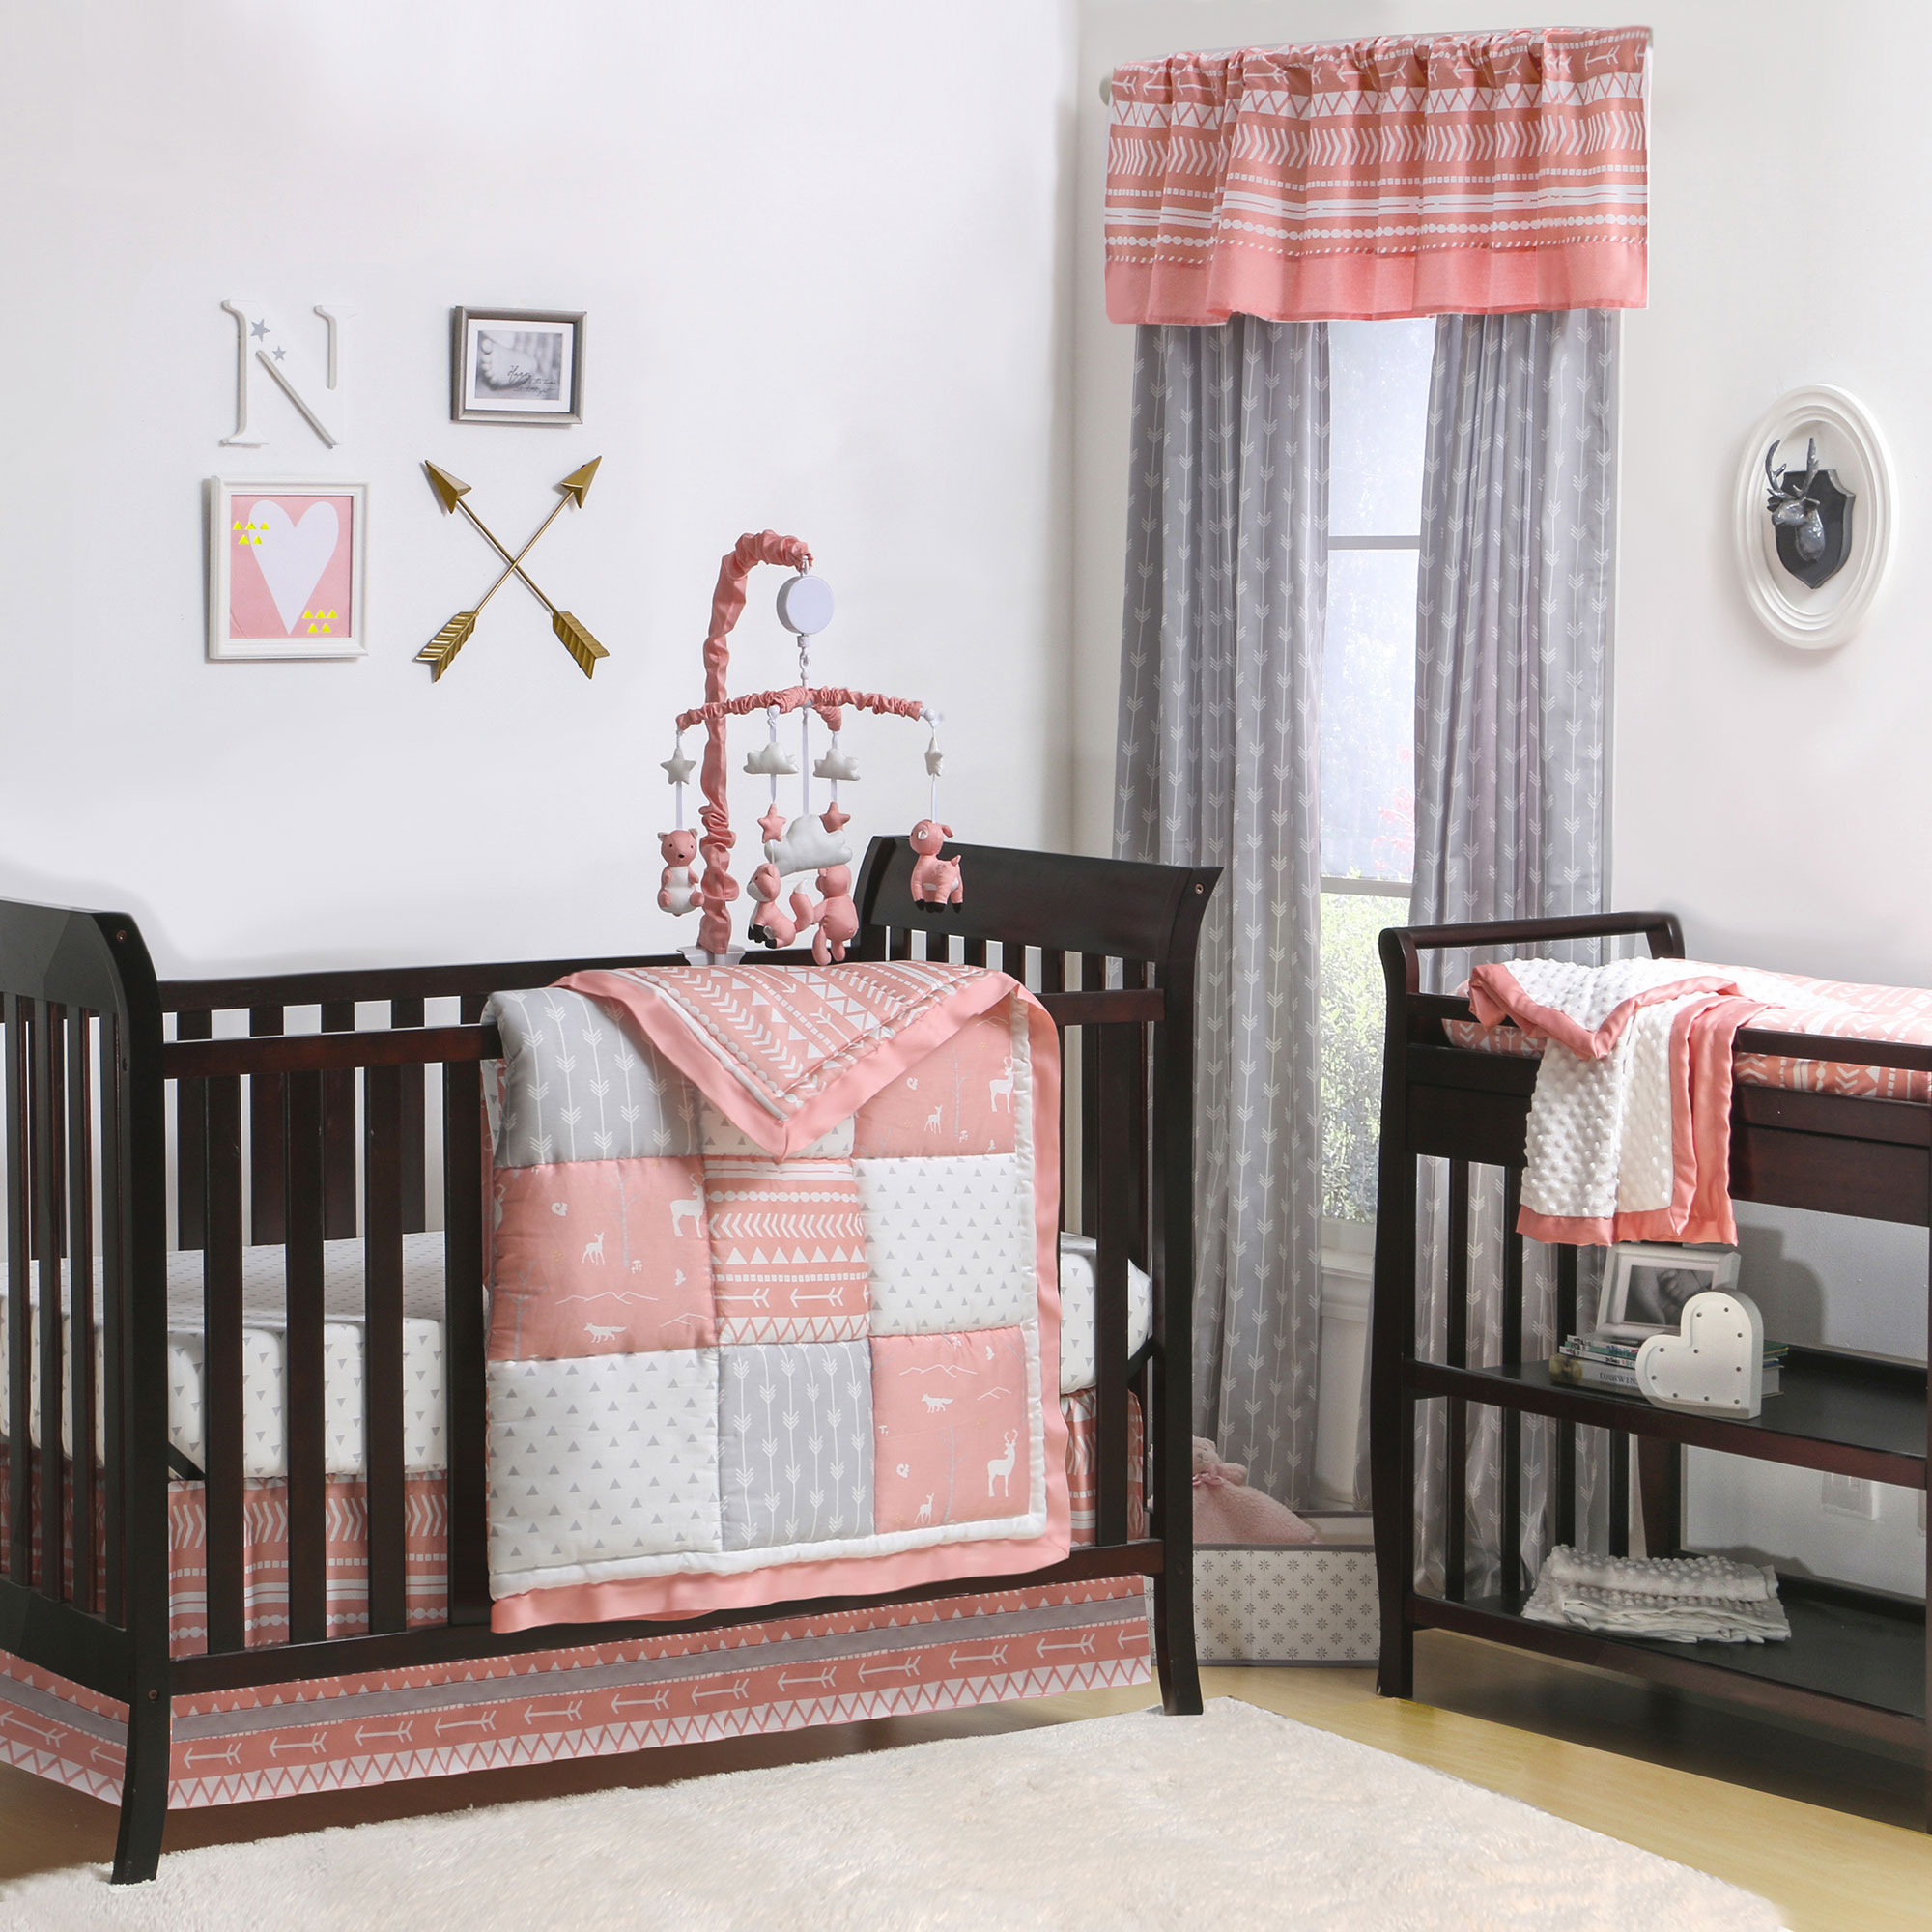 of charming trend coral baby crib sheets and cribs peach with colored bedding